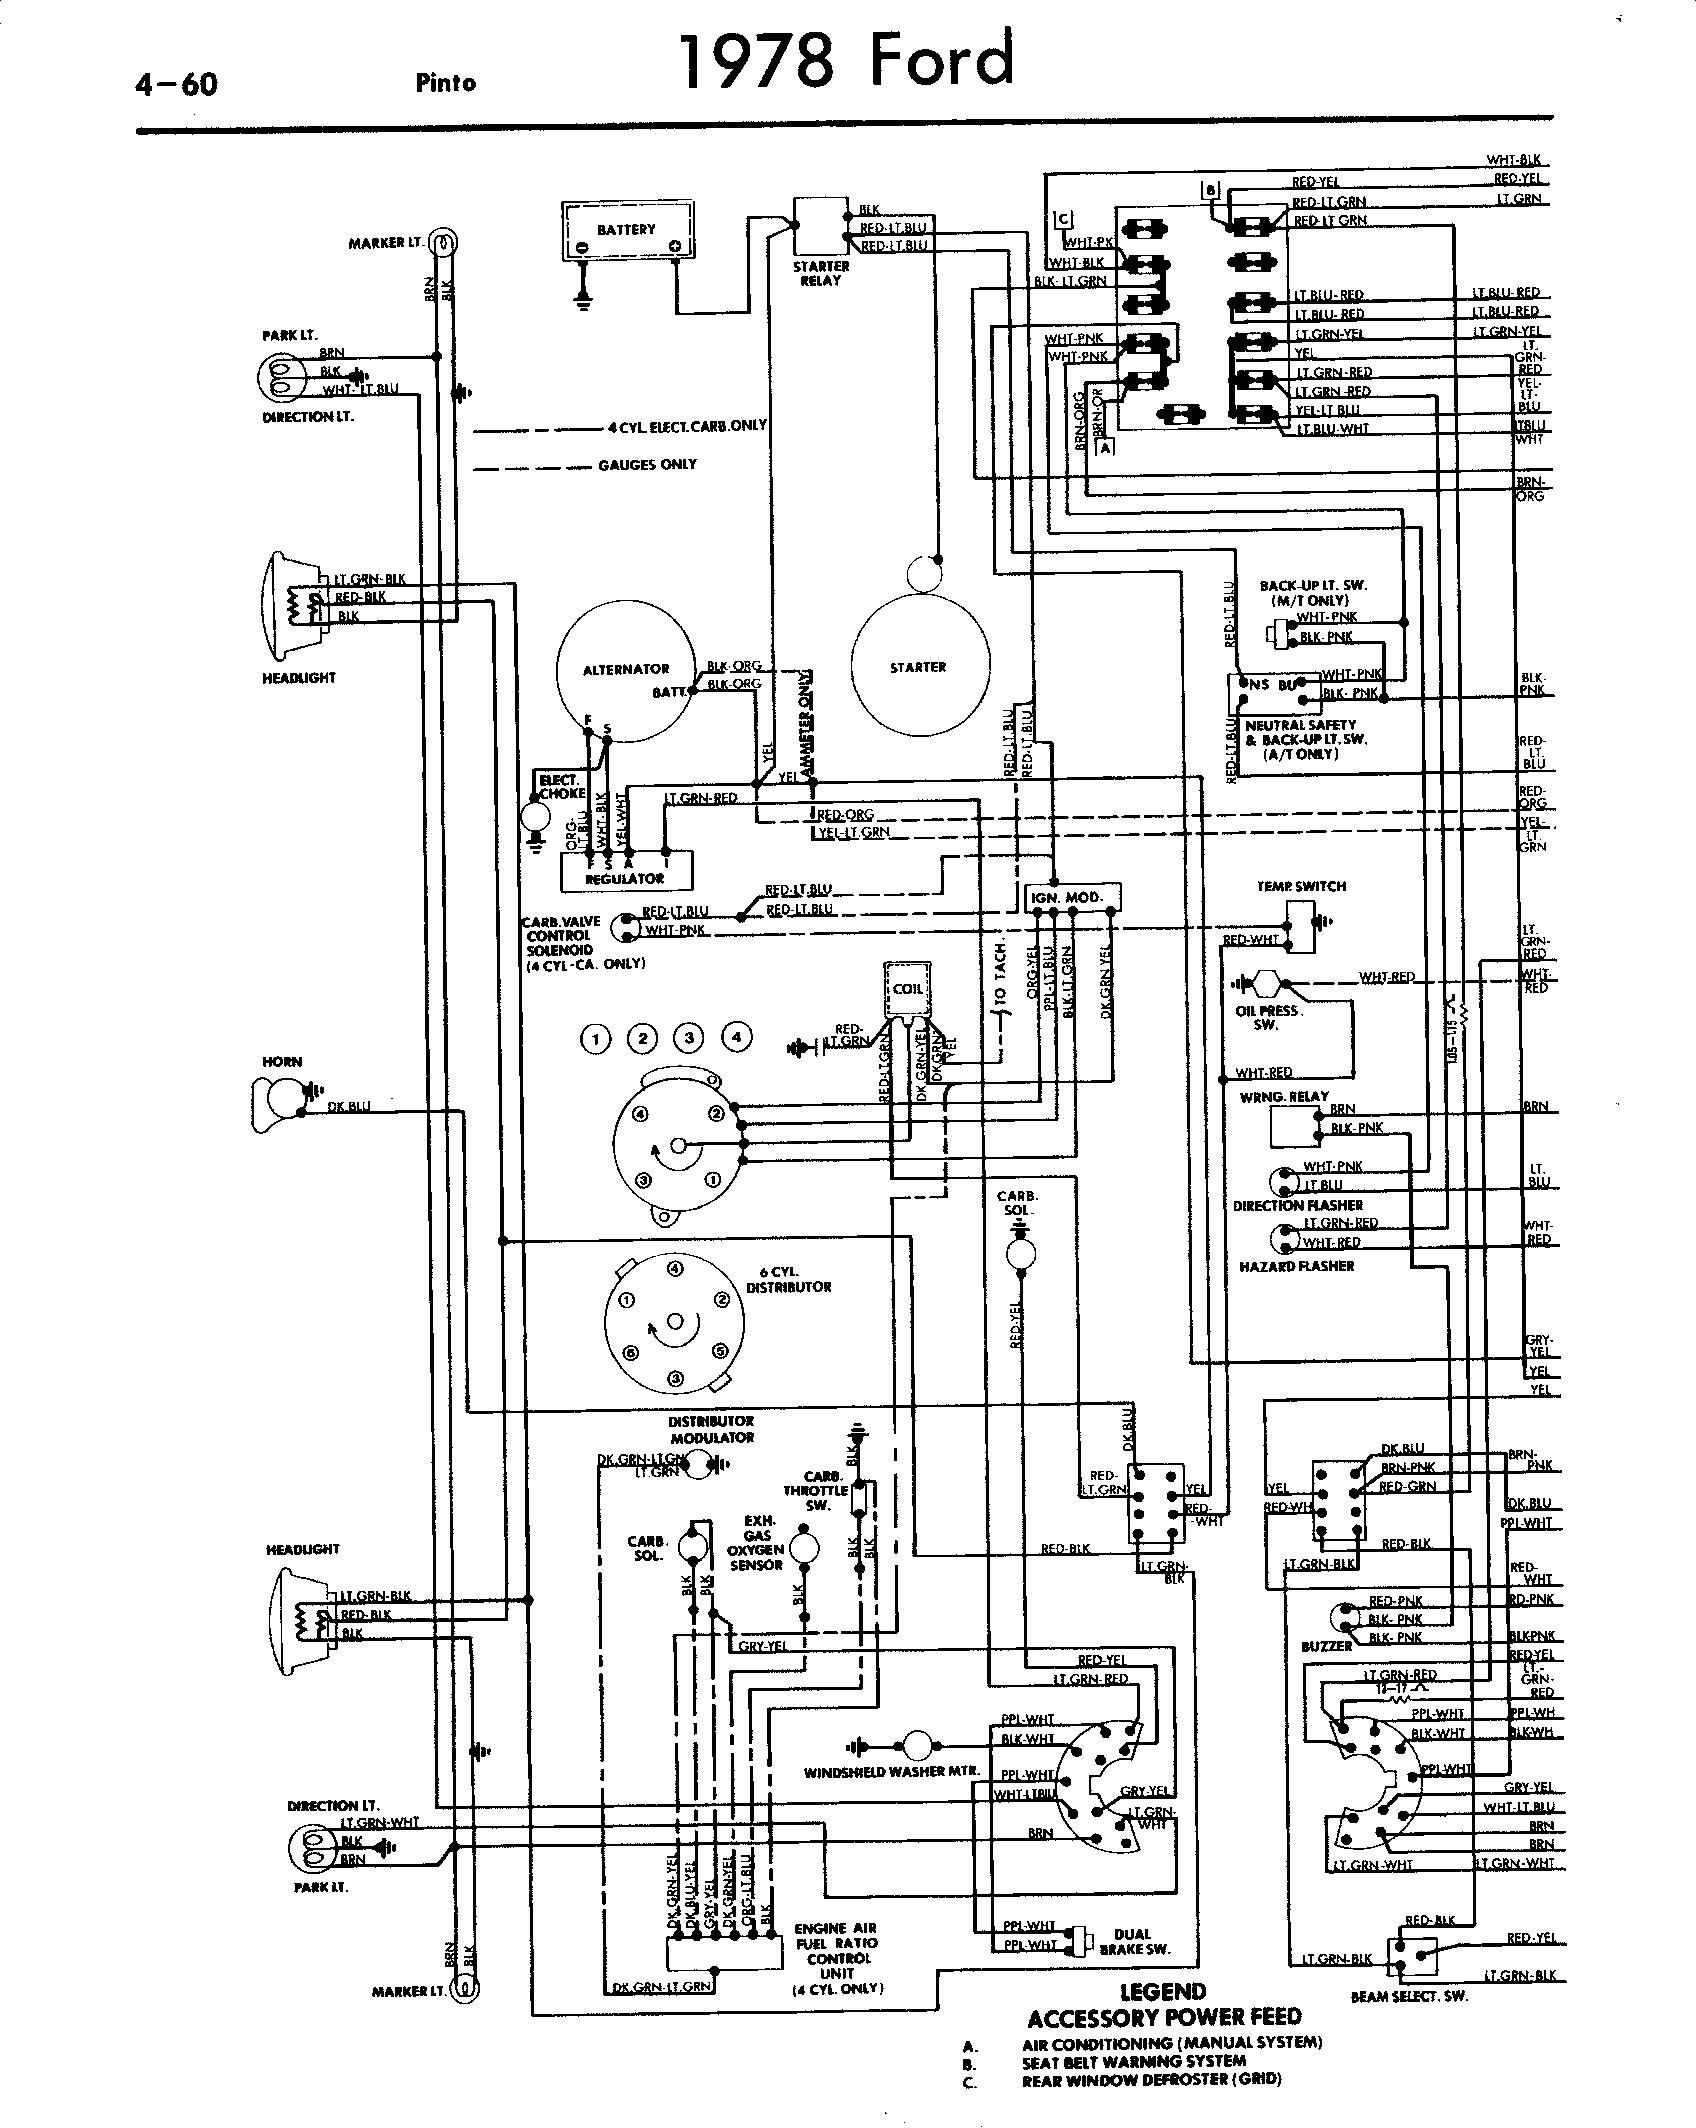 2001 ford 5 4 Engine Diagram 01 7 3 Engine Wire Diagram Wiring Info • Of